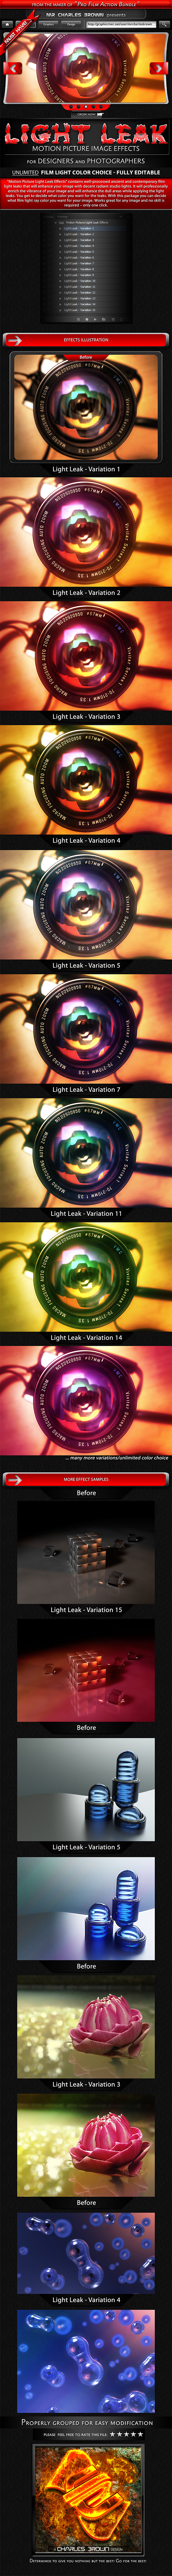 Motion Picture Light Leak Effects - Photo Effects Actions